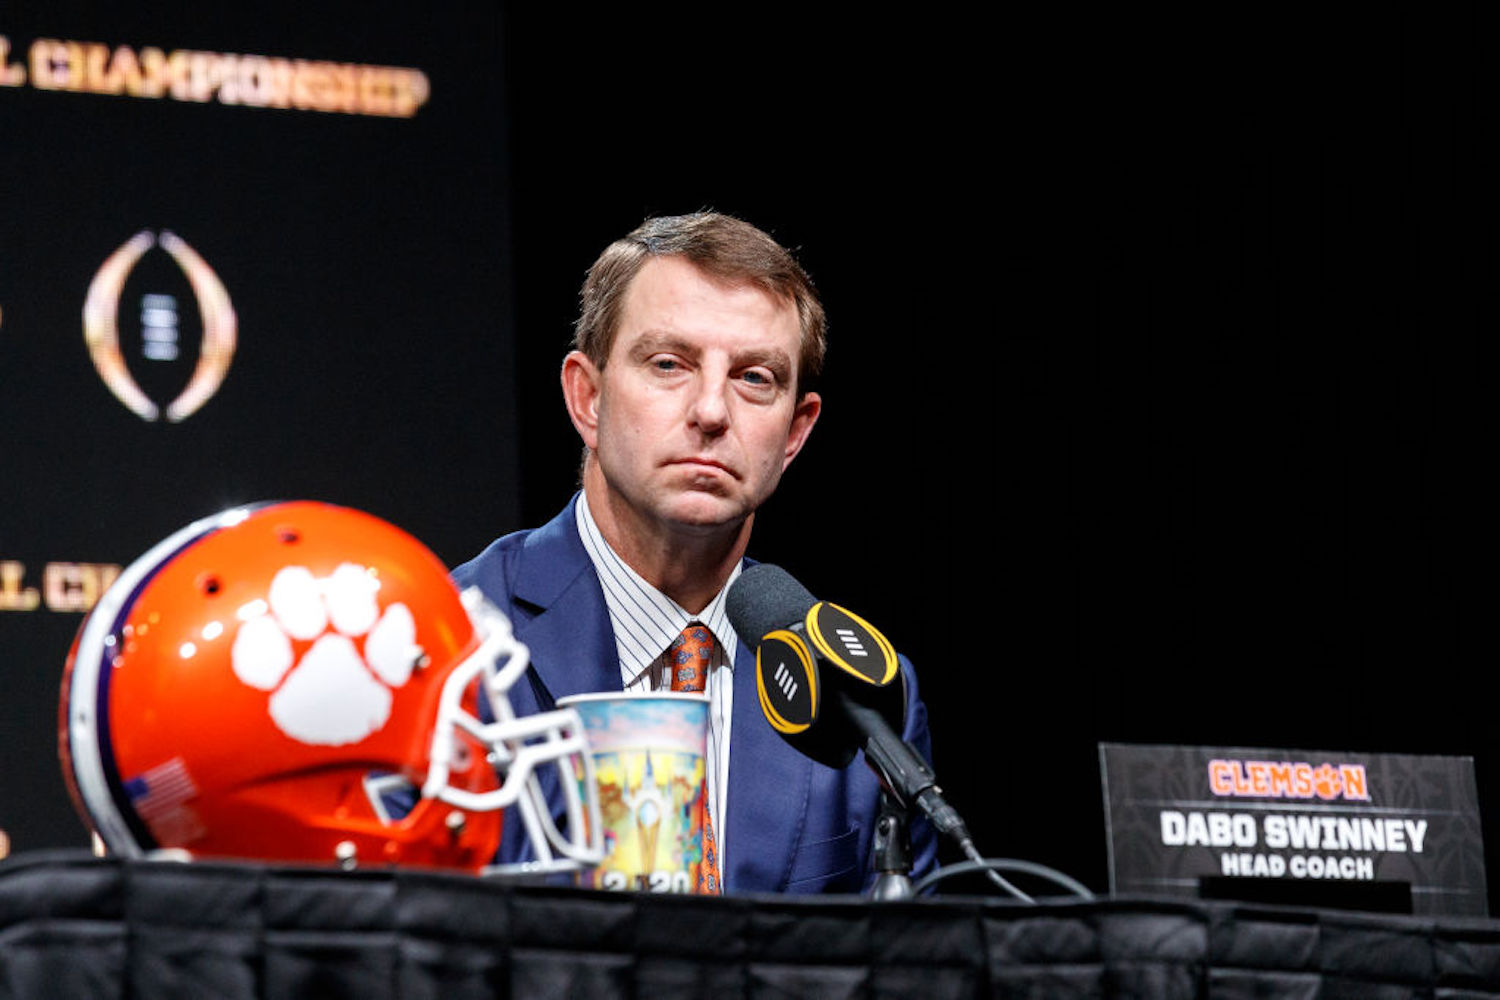 Dabo Swinney and Clemson's Championship Hopes Just Took a Huge Hit